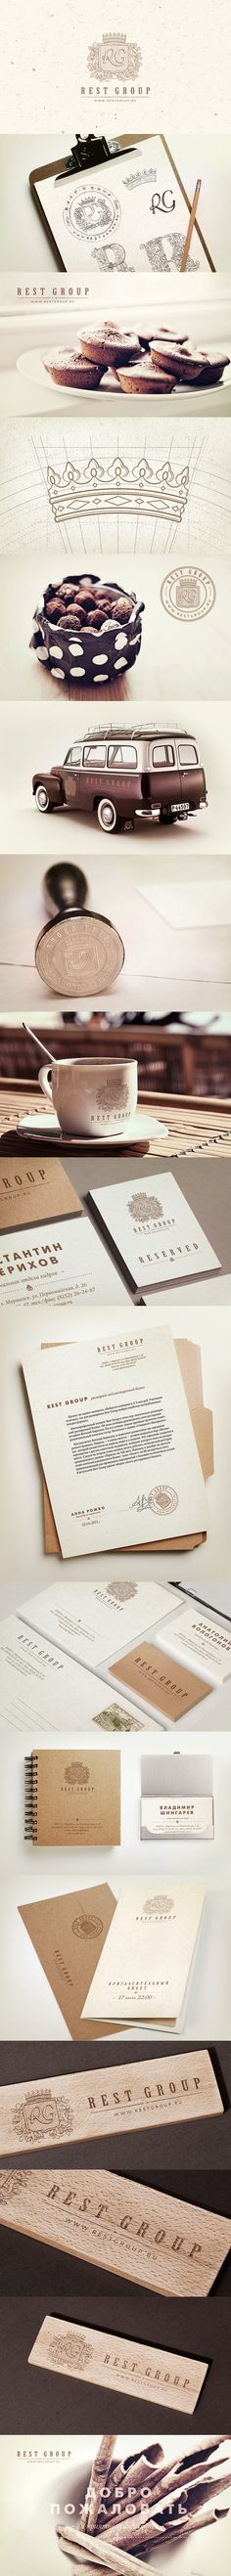 Graphic Design Collections: ??????? illustration